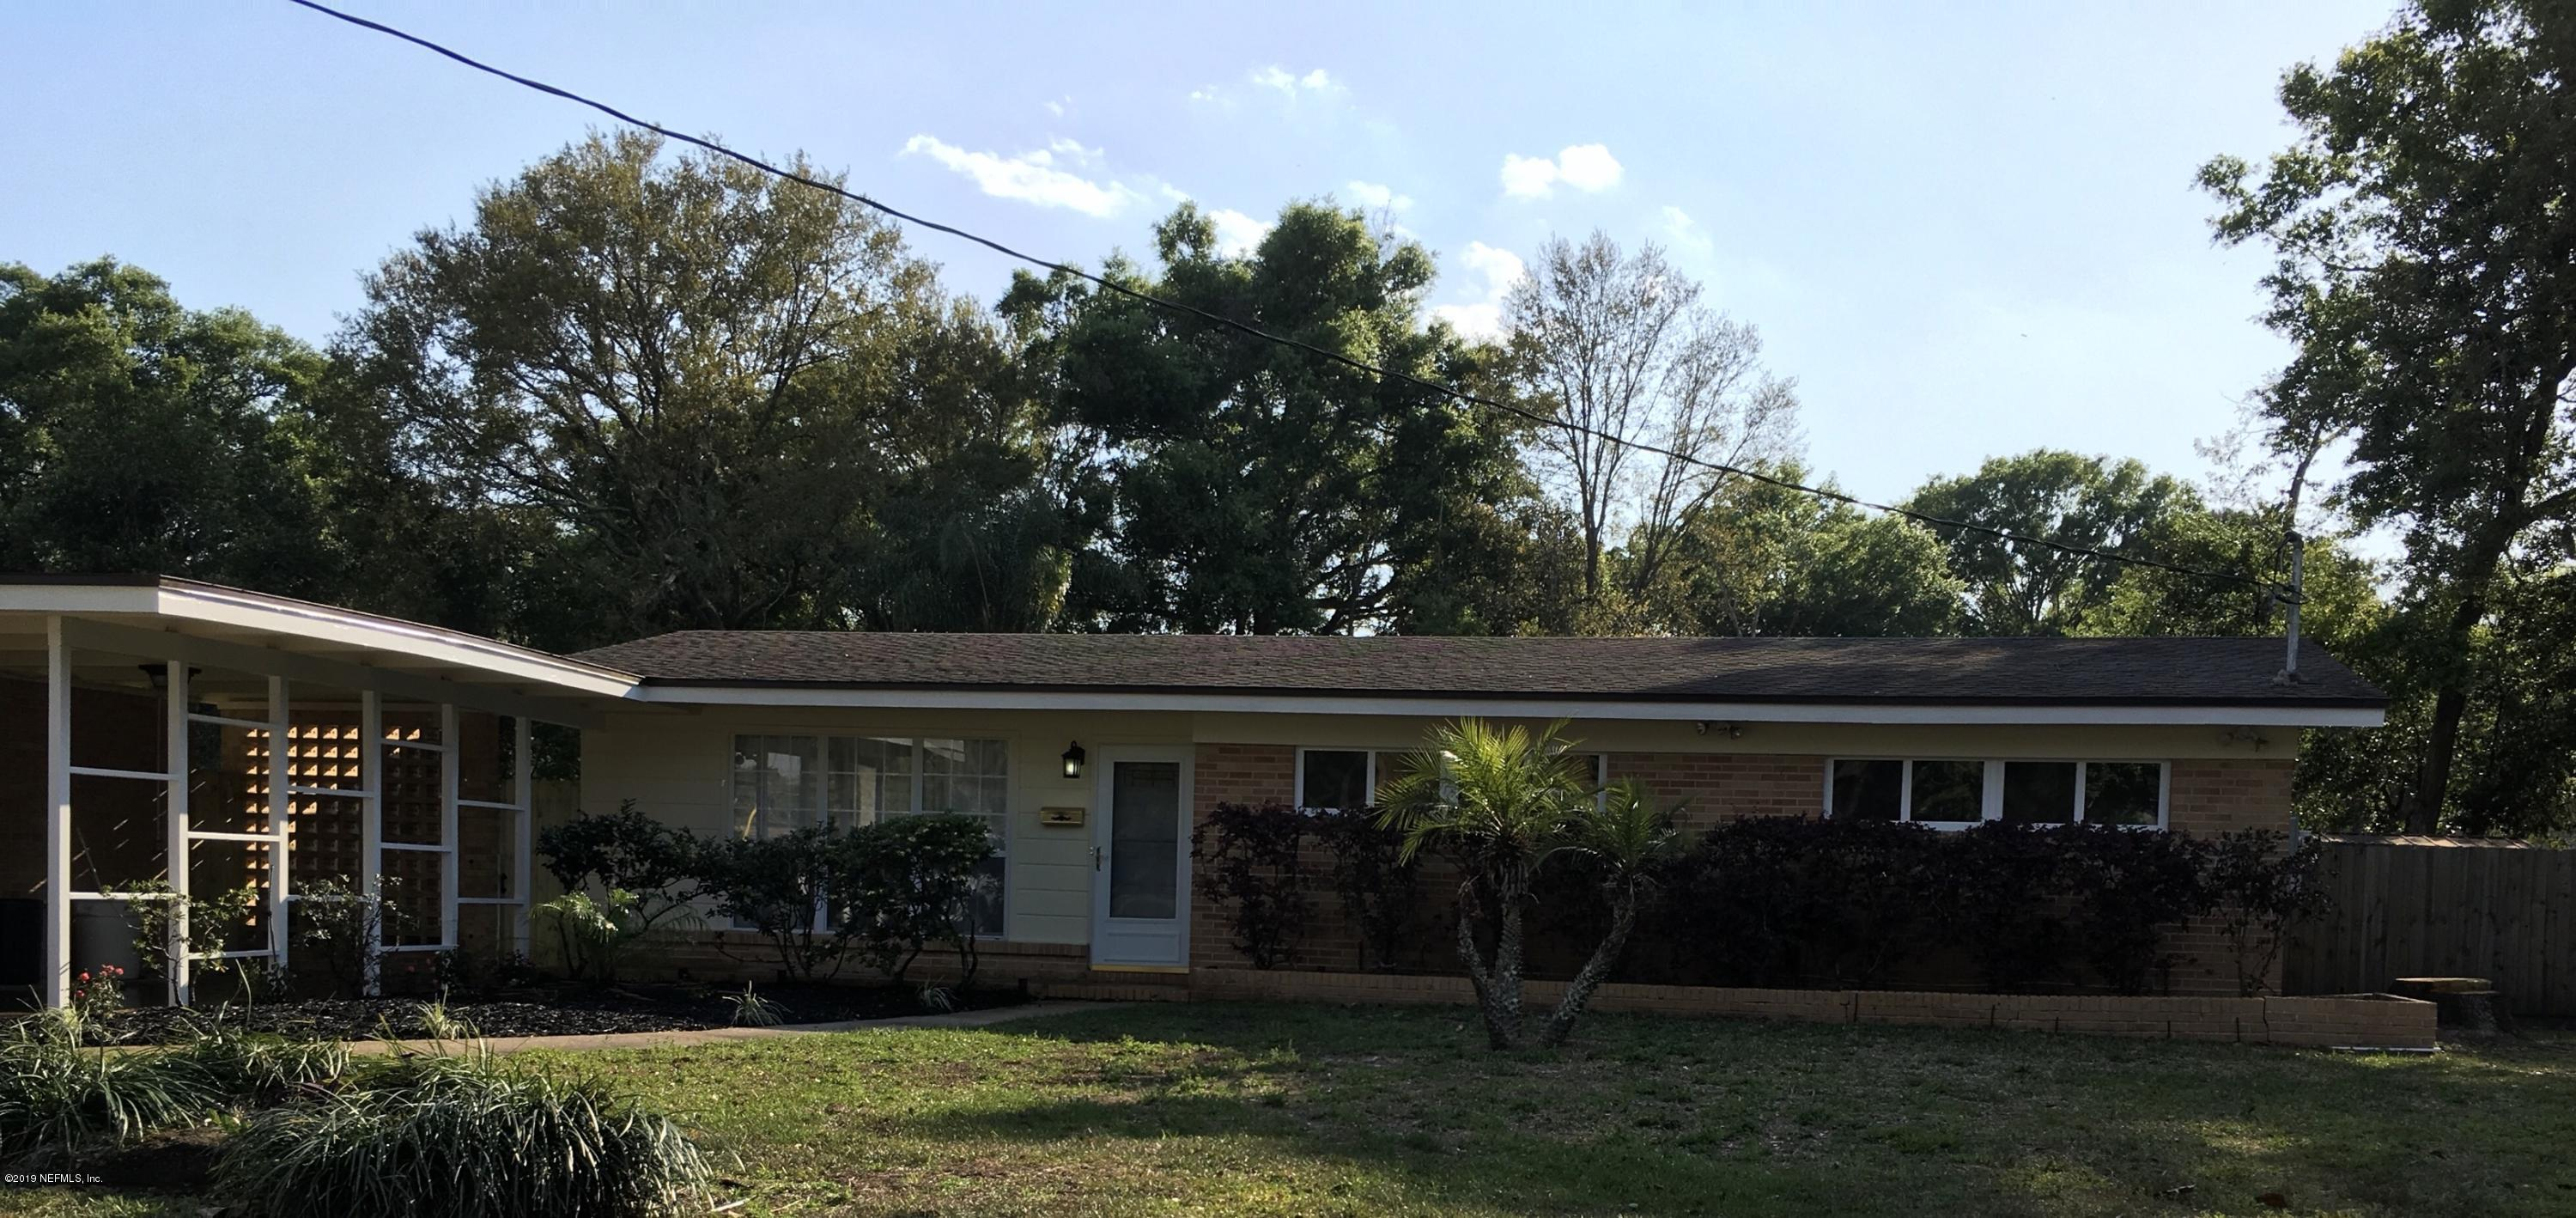 3302 LENCZYK, JACKSONVILLE, FLORIDA 32277, 3 Bedrooms Bedrooms, ,2 BathroomsBathrooms,Residential - single family,For sale,LENCZYK,986012